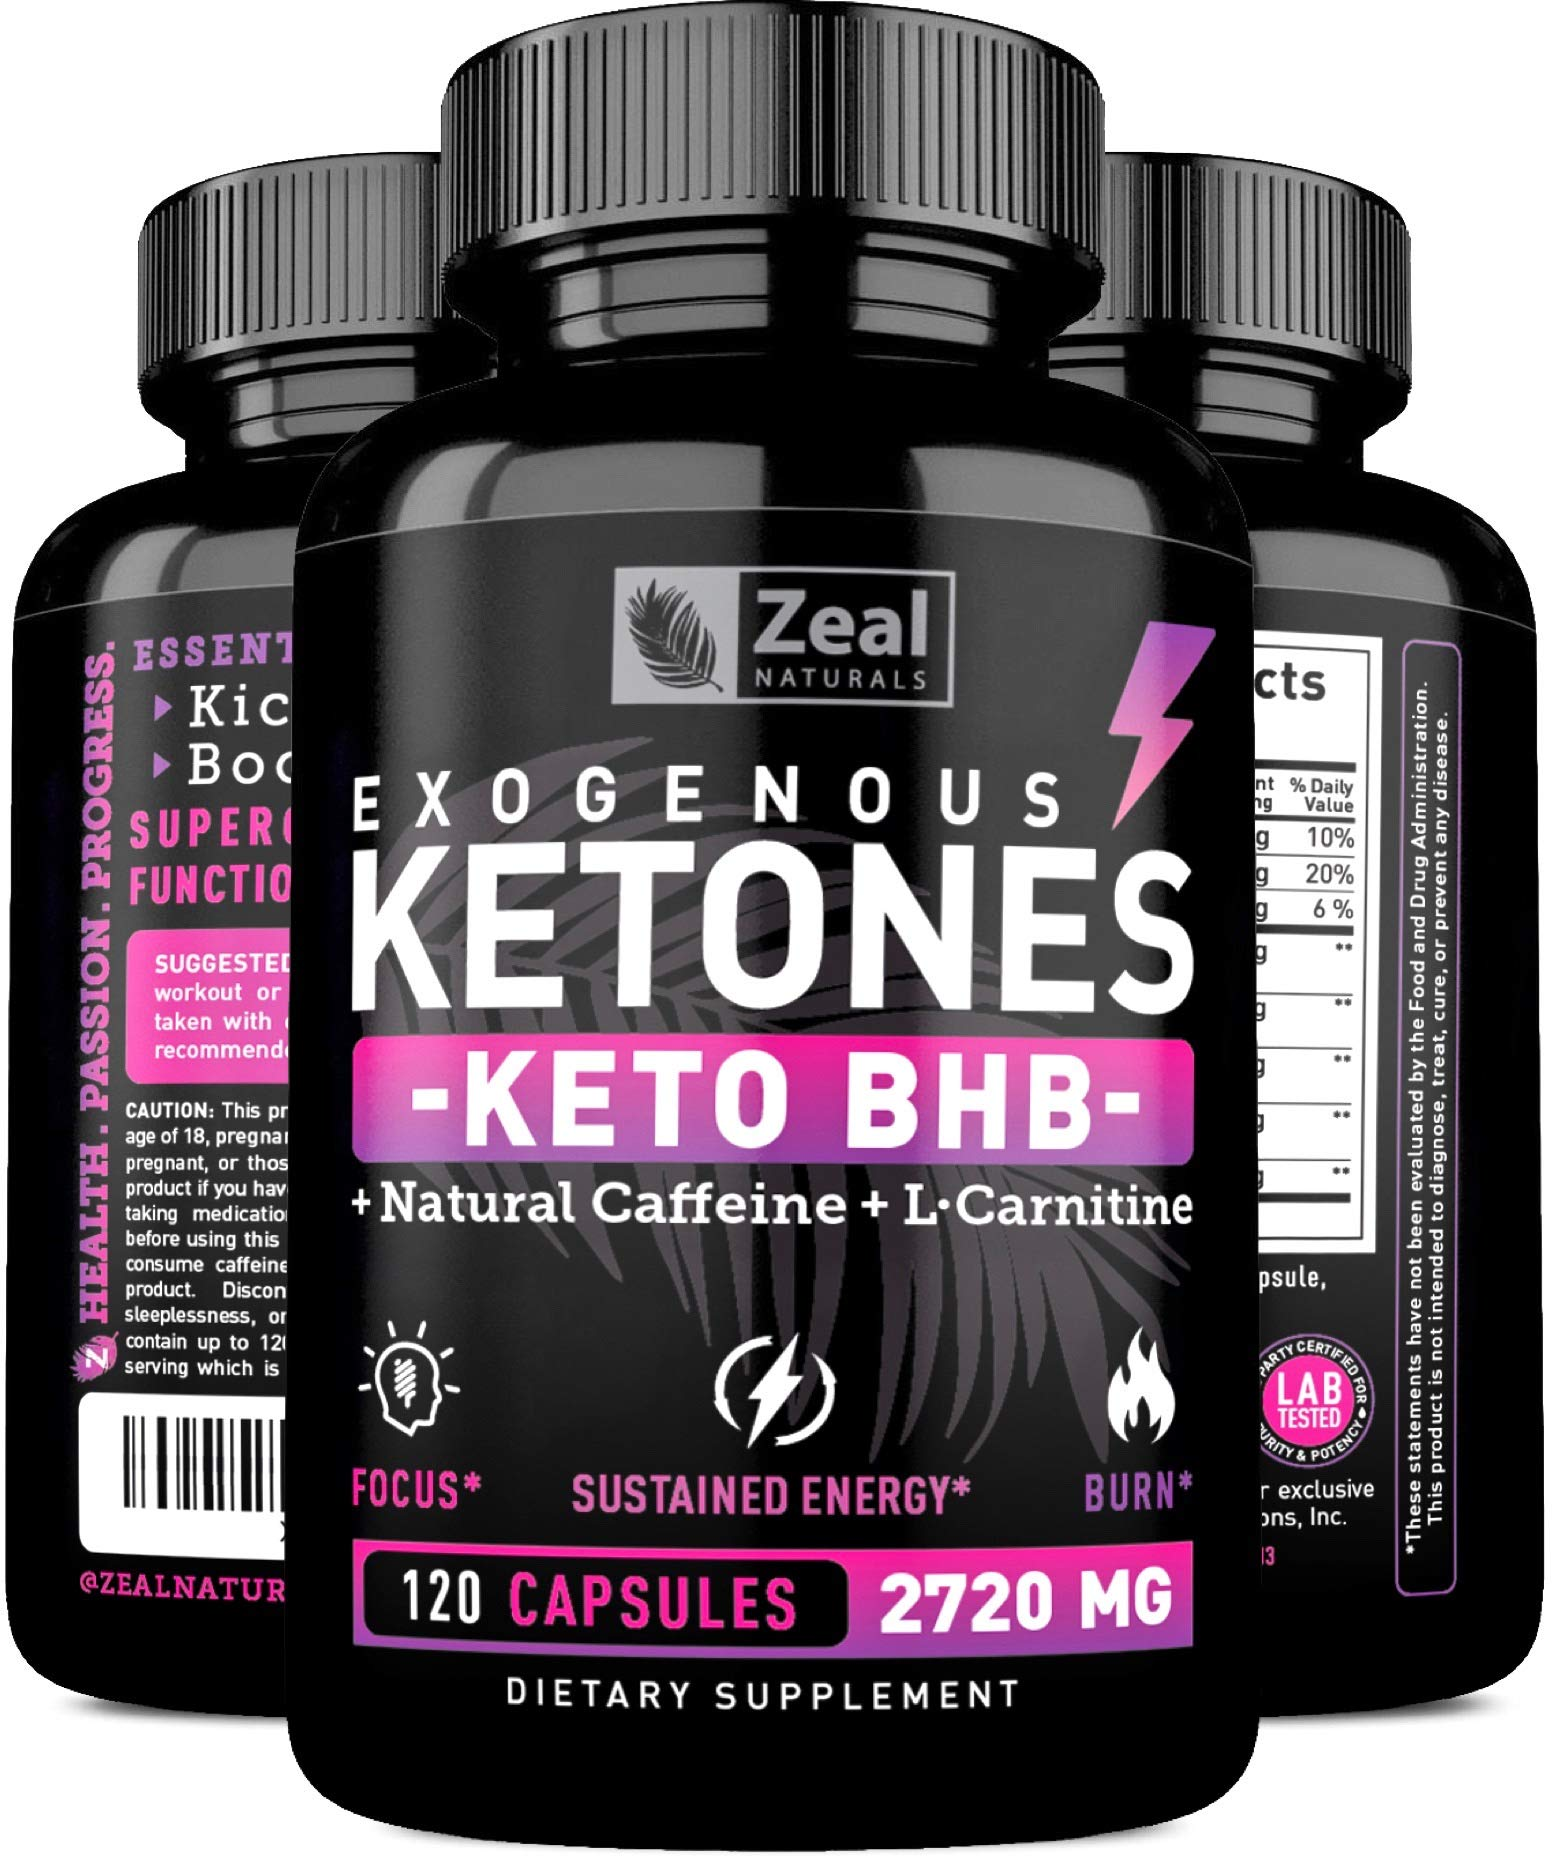 Keto BHB Exogenous Ketones Pills (2720mg | 120 Capsules) Keto Pills w. goBHB Salts, Natural Caffeine & L-Carnitine - Keto BHB Oil Capsules Beta Hydroxybutyrate for Weight Loss Keto Vitamins Keto Salts by Zeal Naturals